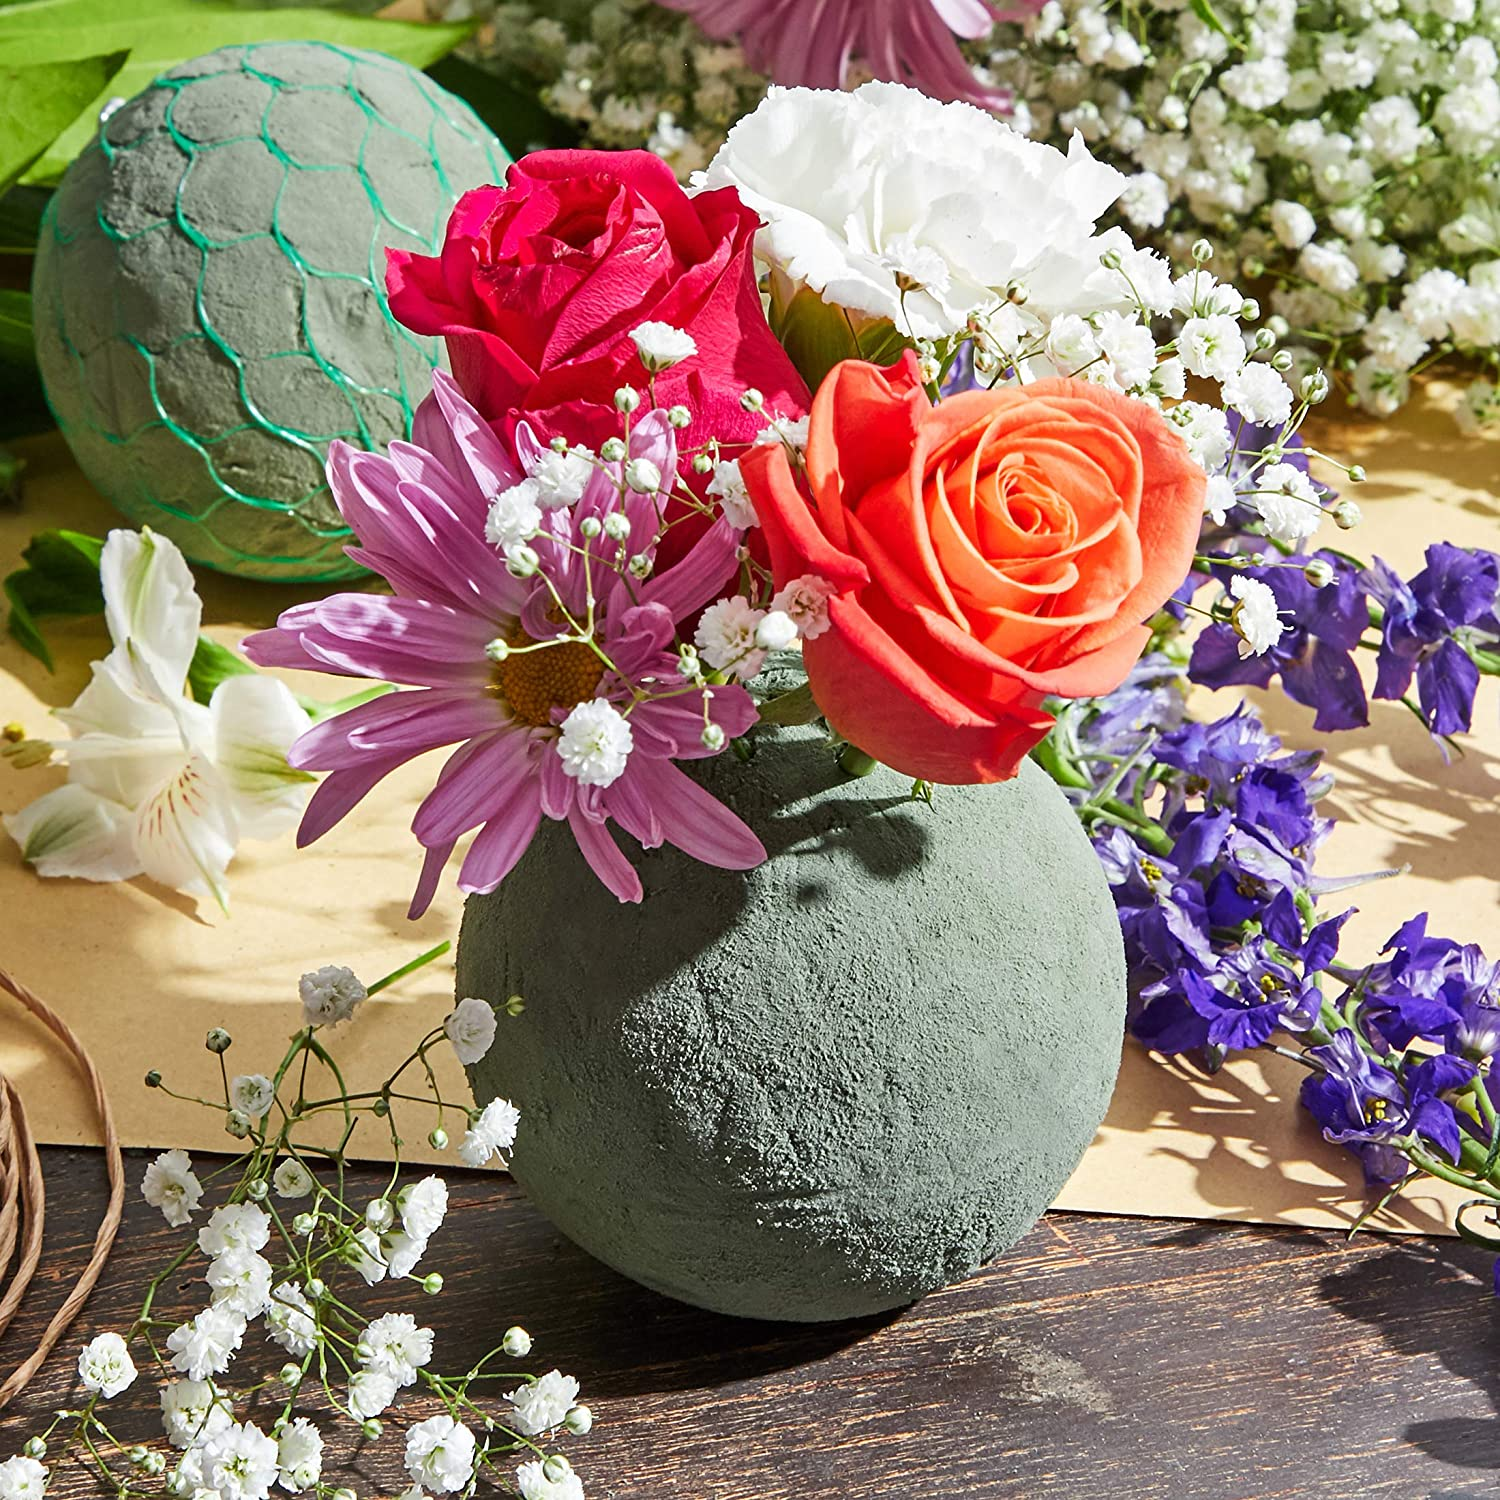 4.5 Inches Bright Creations 6-Pack Floral Wet Foam Sphere for Fresh Flowers